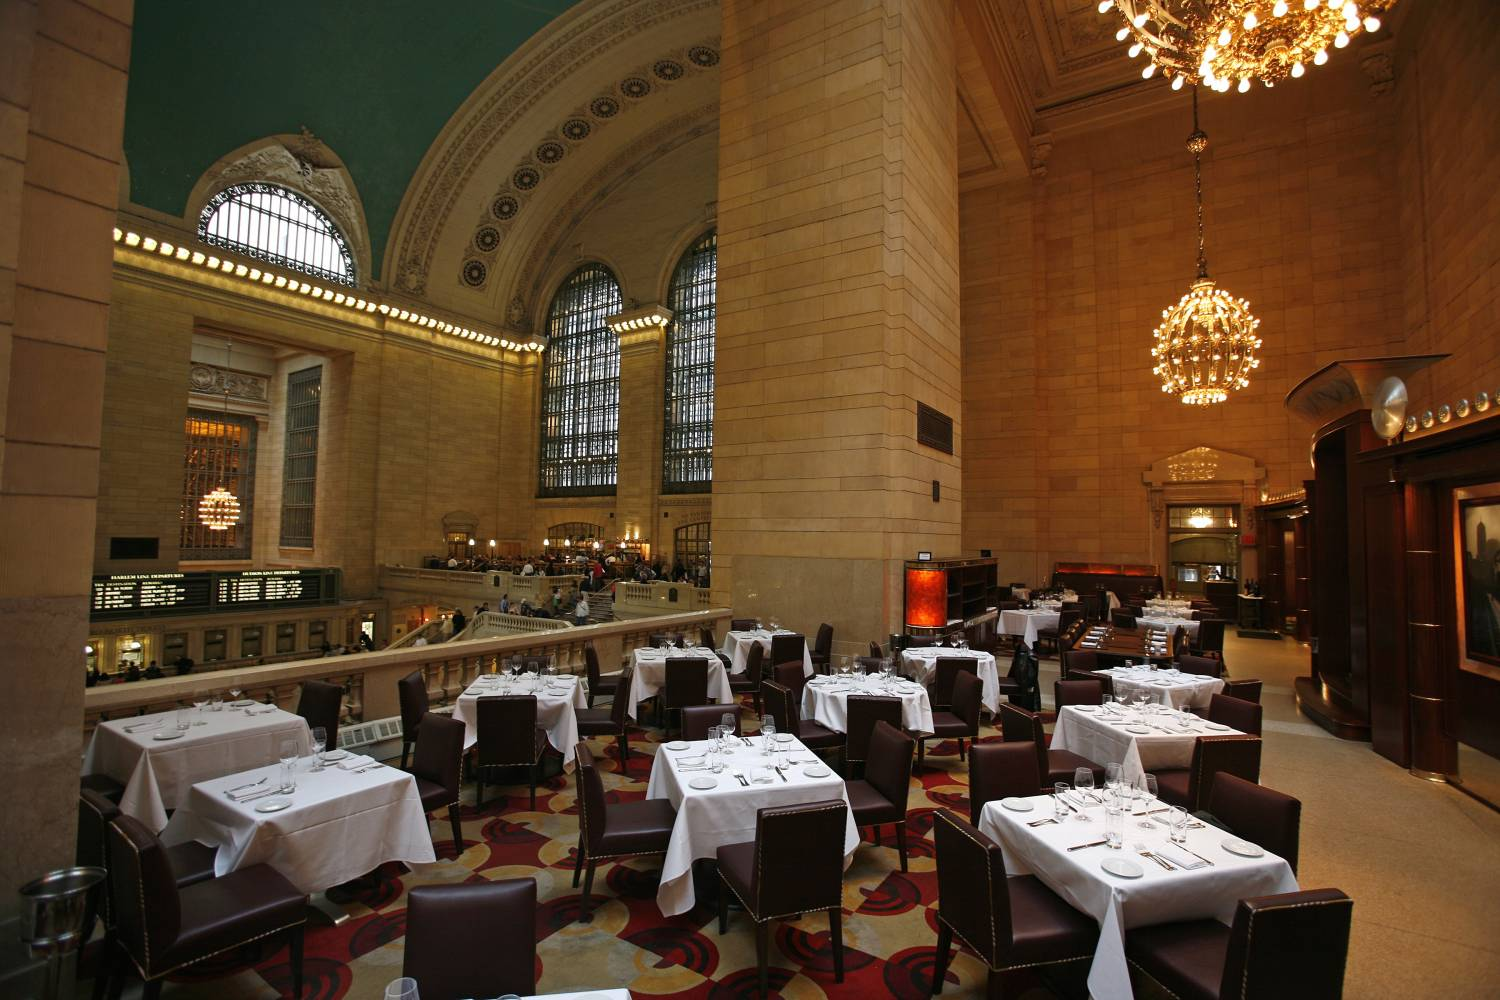 Michael Jordan's The Steak House N.Y.C in grand Central